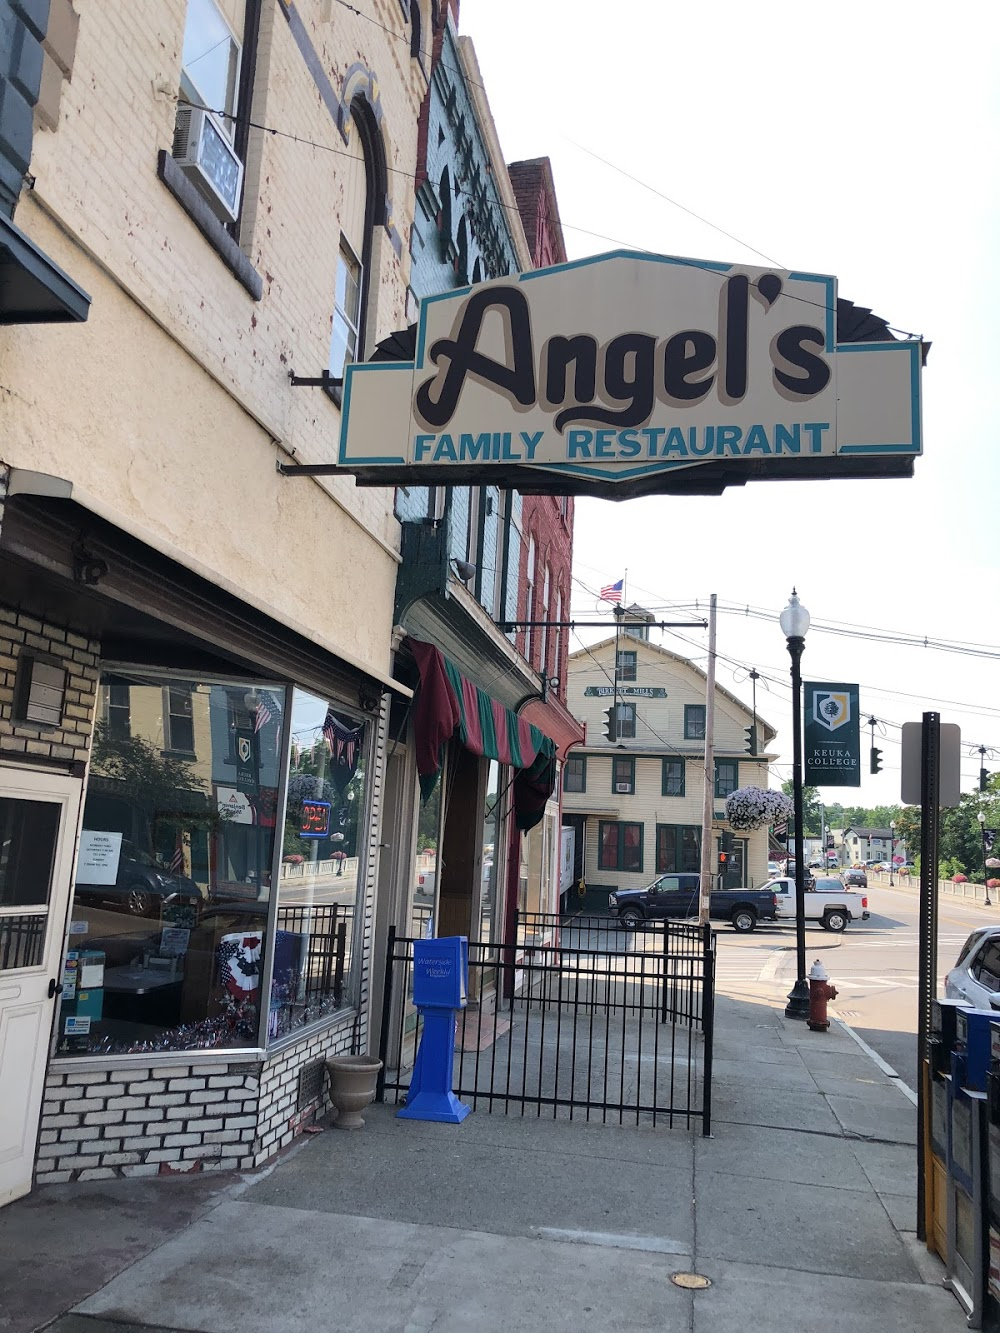 Angel's Family Restaurant